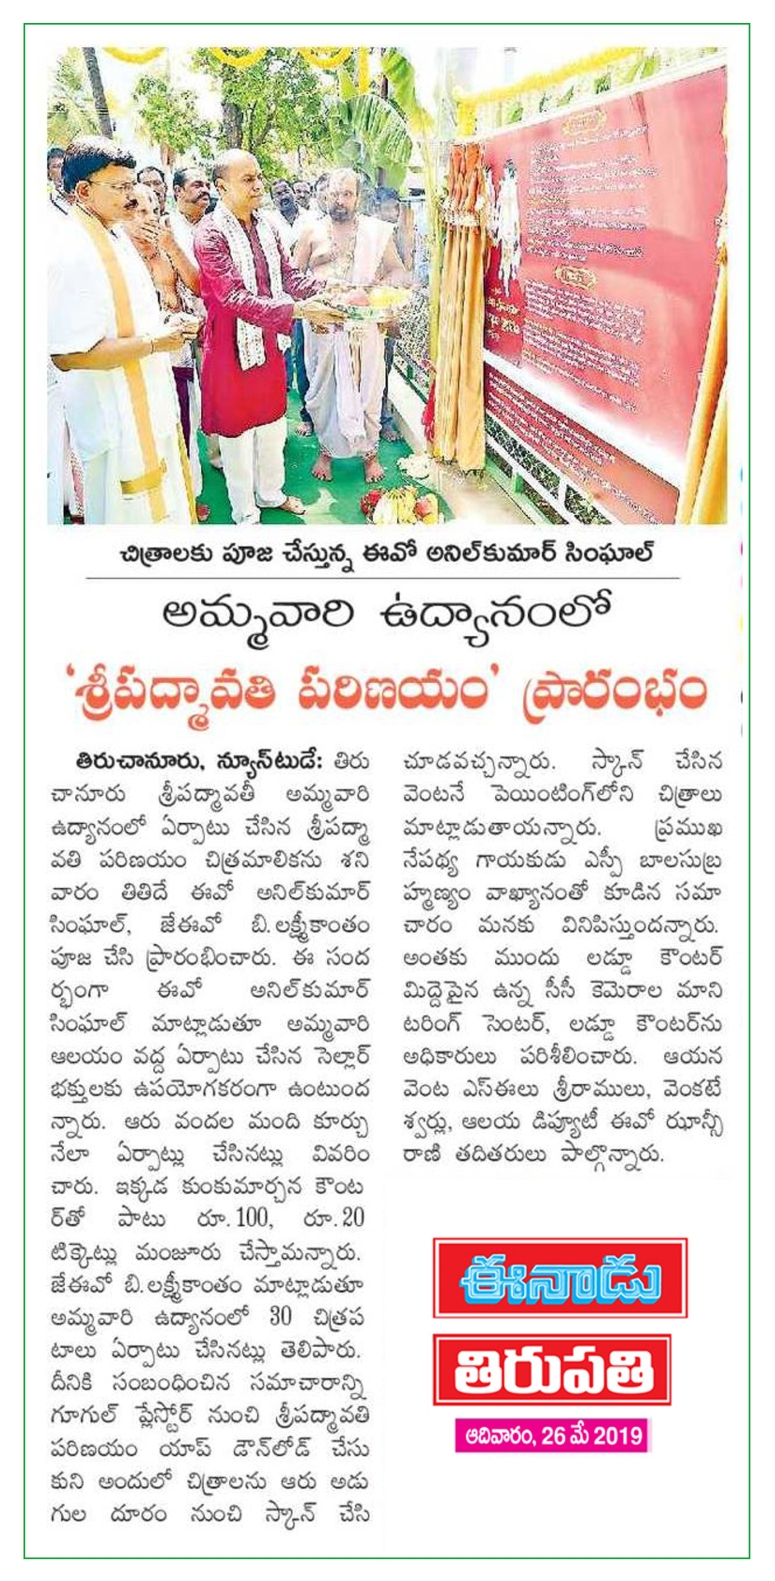 Padmavathi Temple Parinaya Pictures Eenadu 26-05-2019